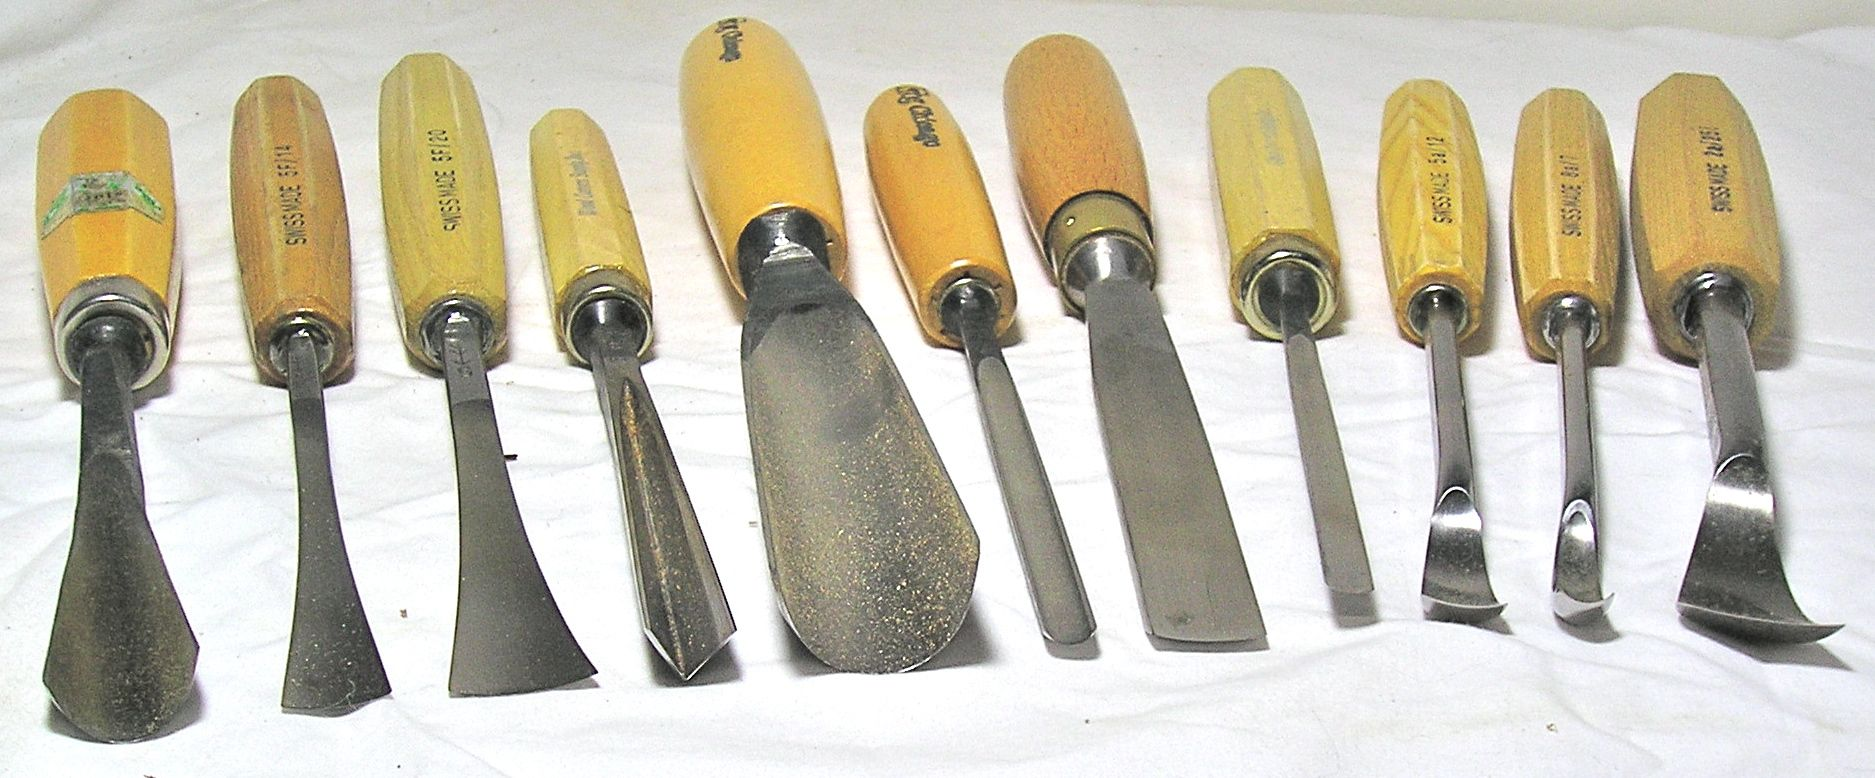 woodworking carving tools